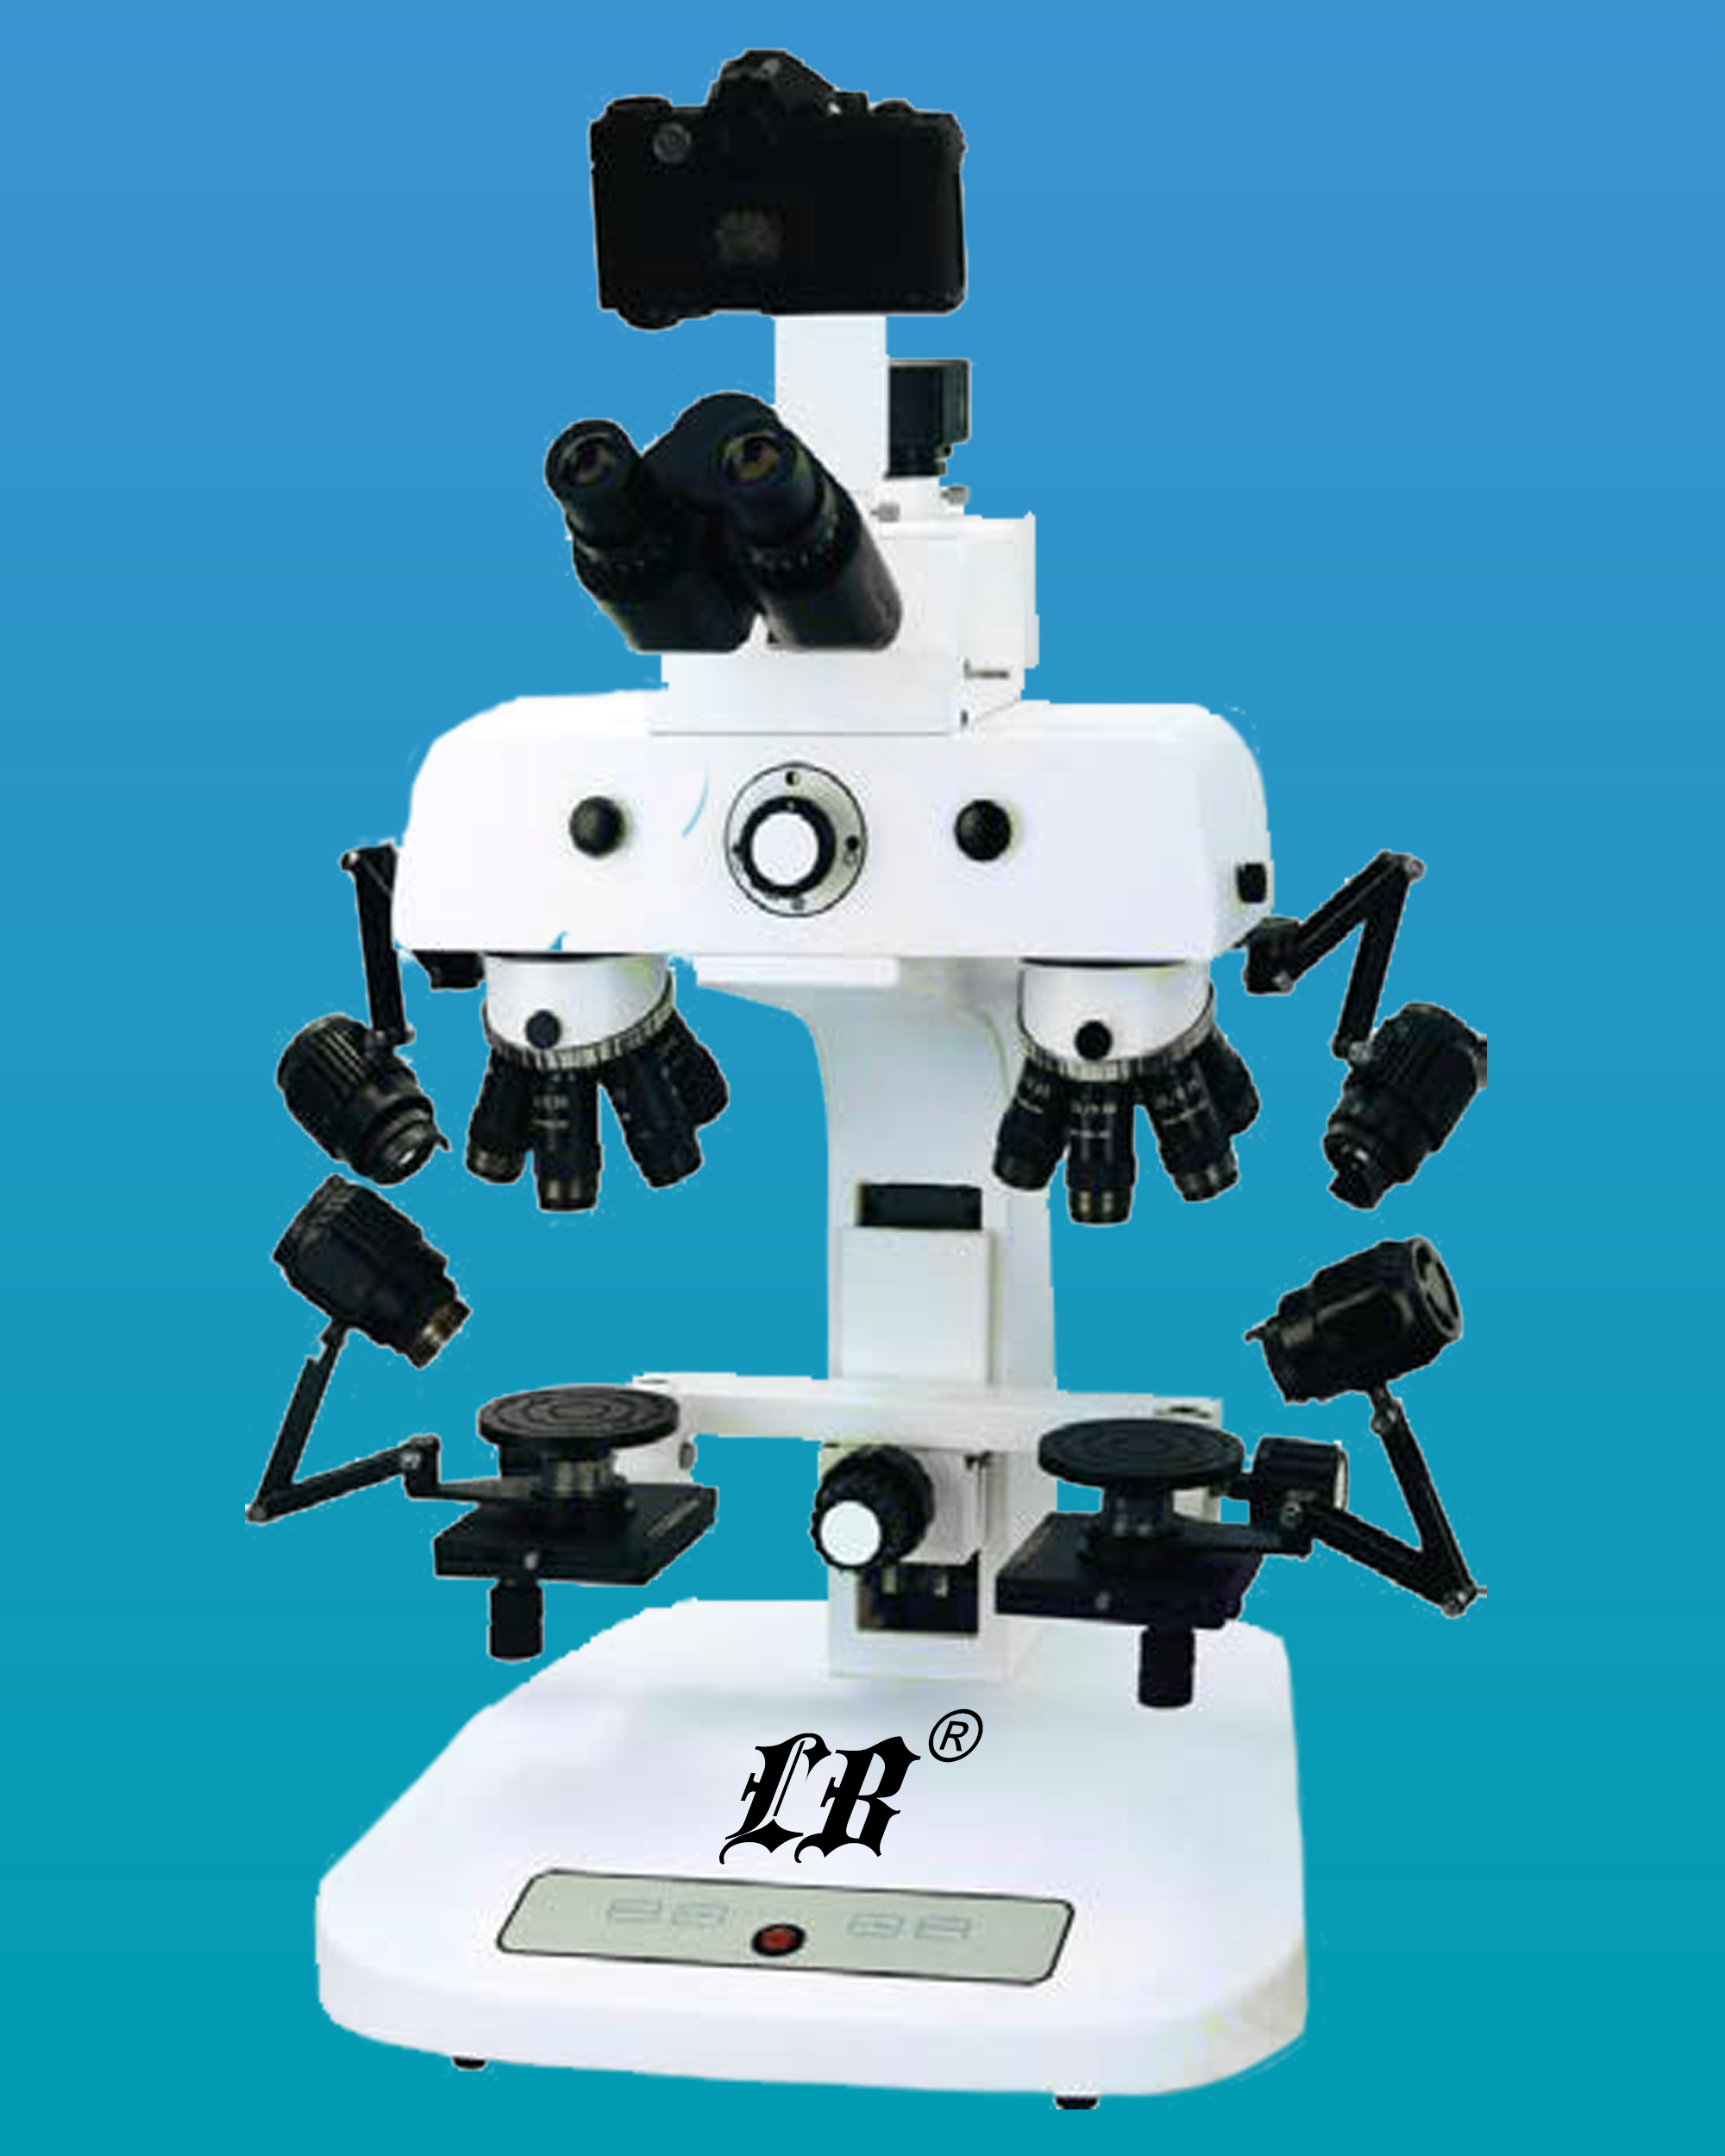 [LB-1010] Comparison Microscope